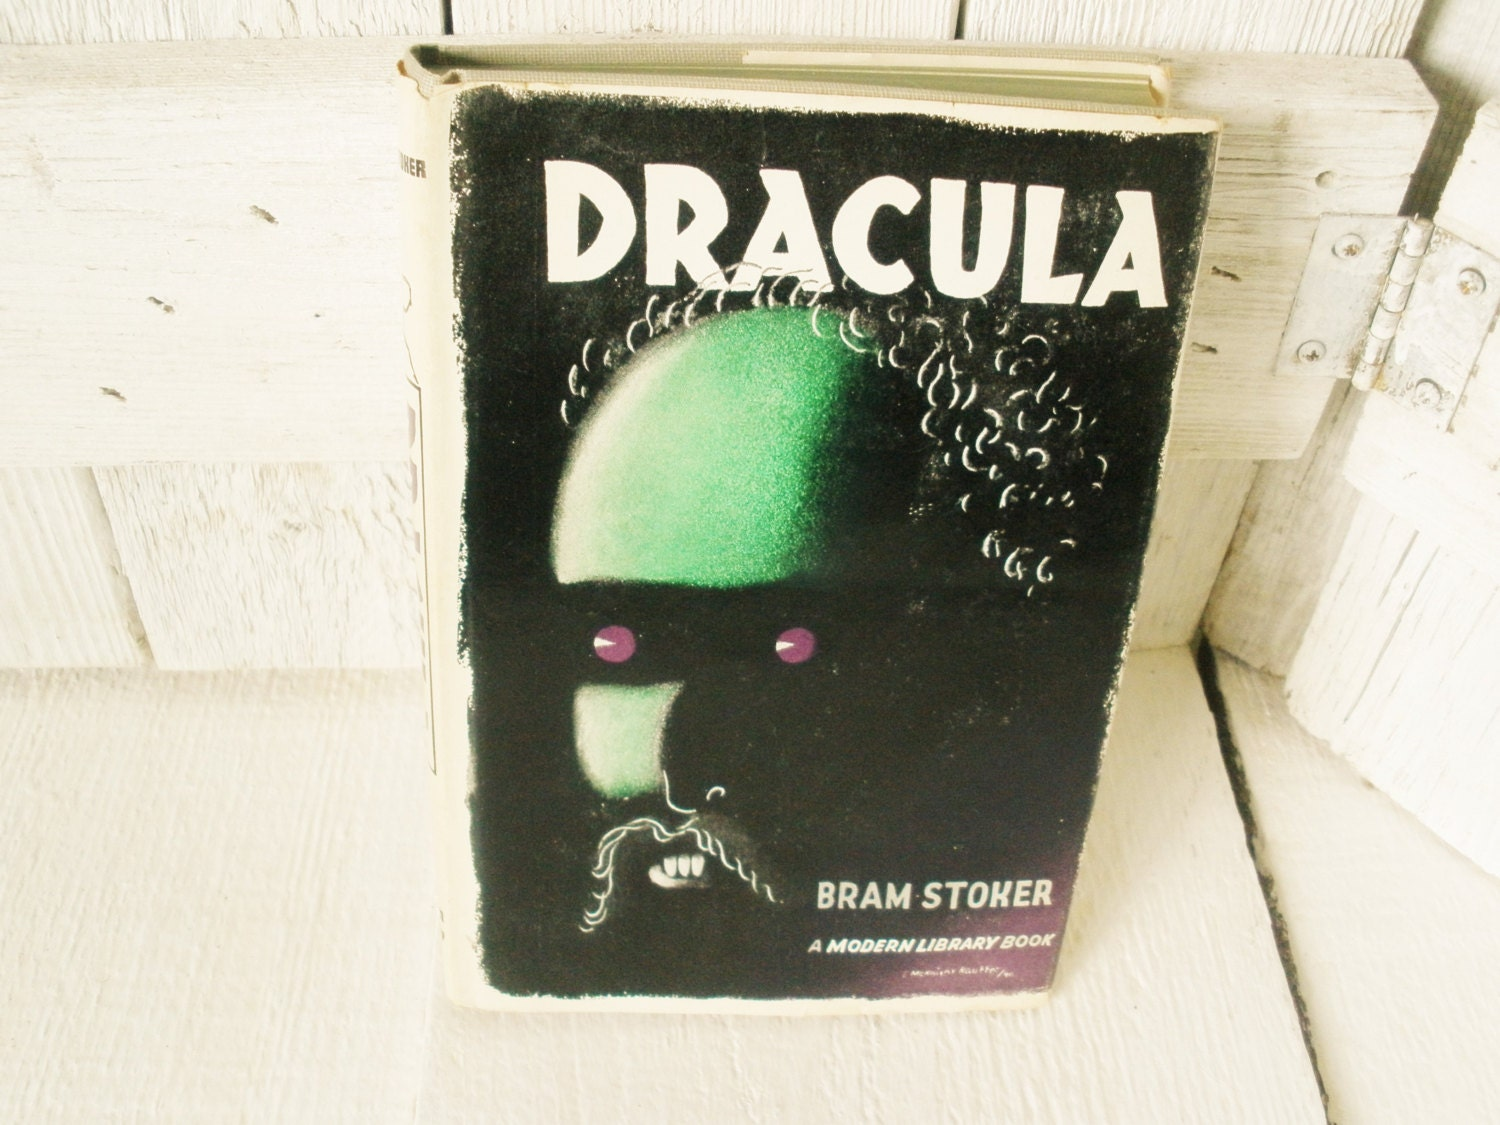 bram stokers dracula probably the best horror novel ever written The best horror movies set in the woods the scariest novels of all time the scariest horror movie animals the best books written under pen names the best scary movies based on true stories the biggest turn ons in a person the best autobiographies ever written the best biopics about real comedians 40 adorable throwback pictures of your favorite .